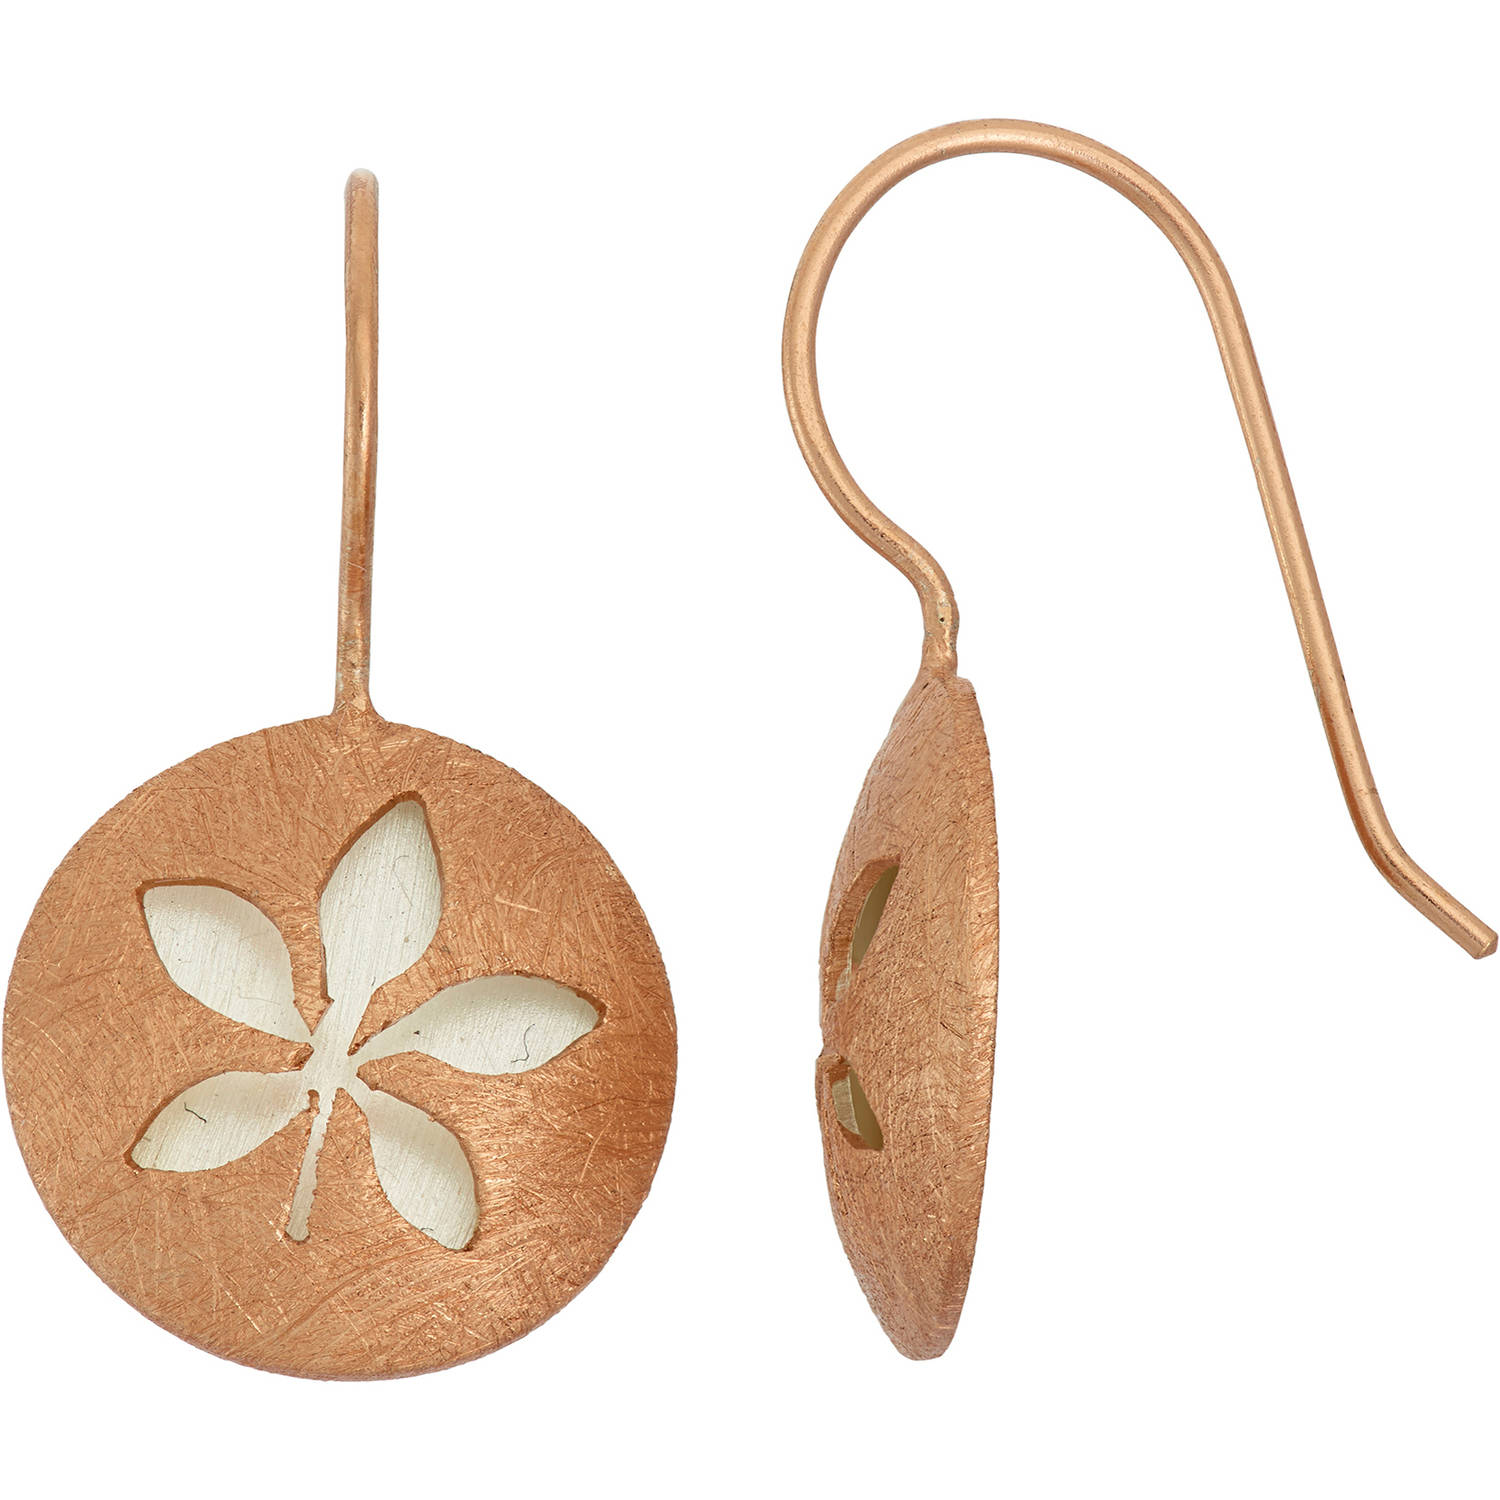 Image of 5th & Main 14kt Rose Gold-Plated and Sterling Silver Leaf Earrings